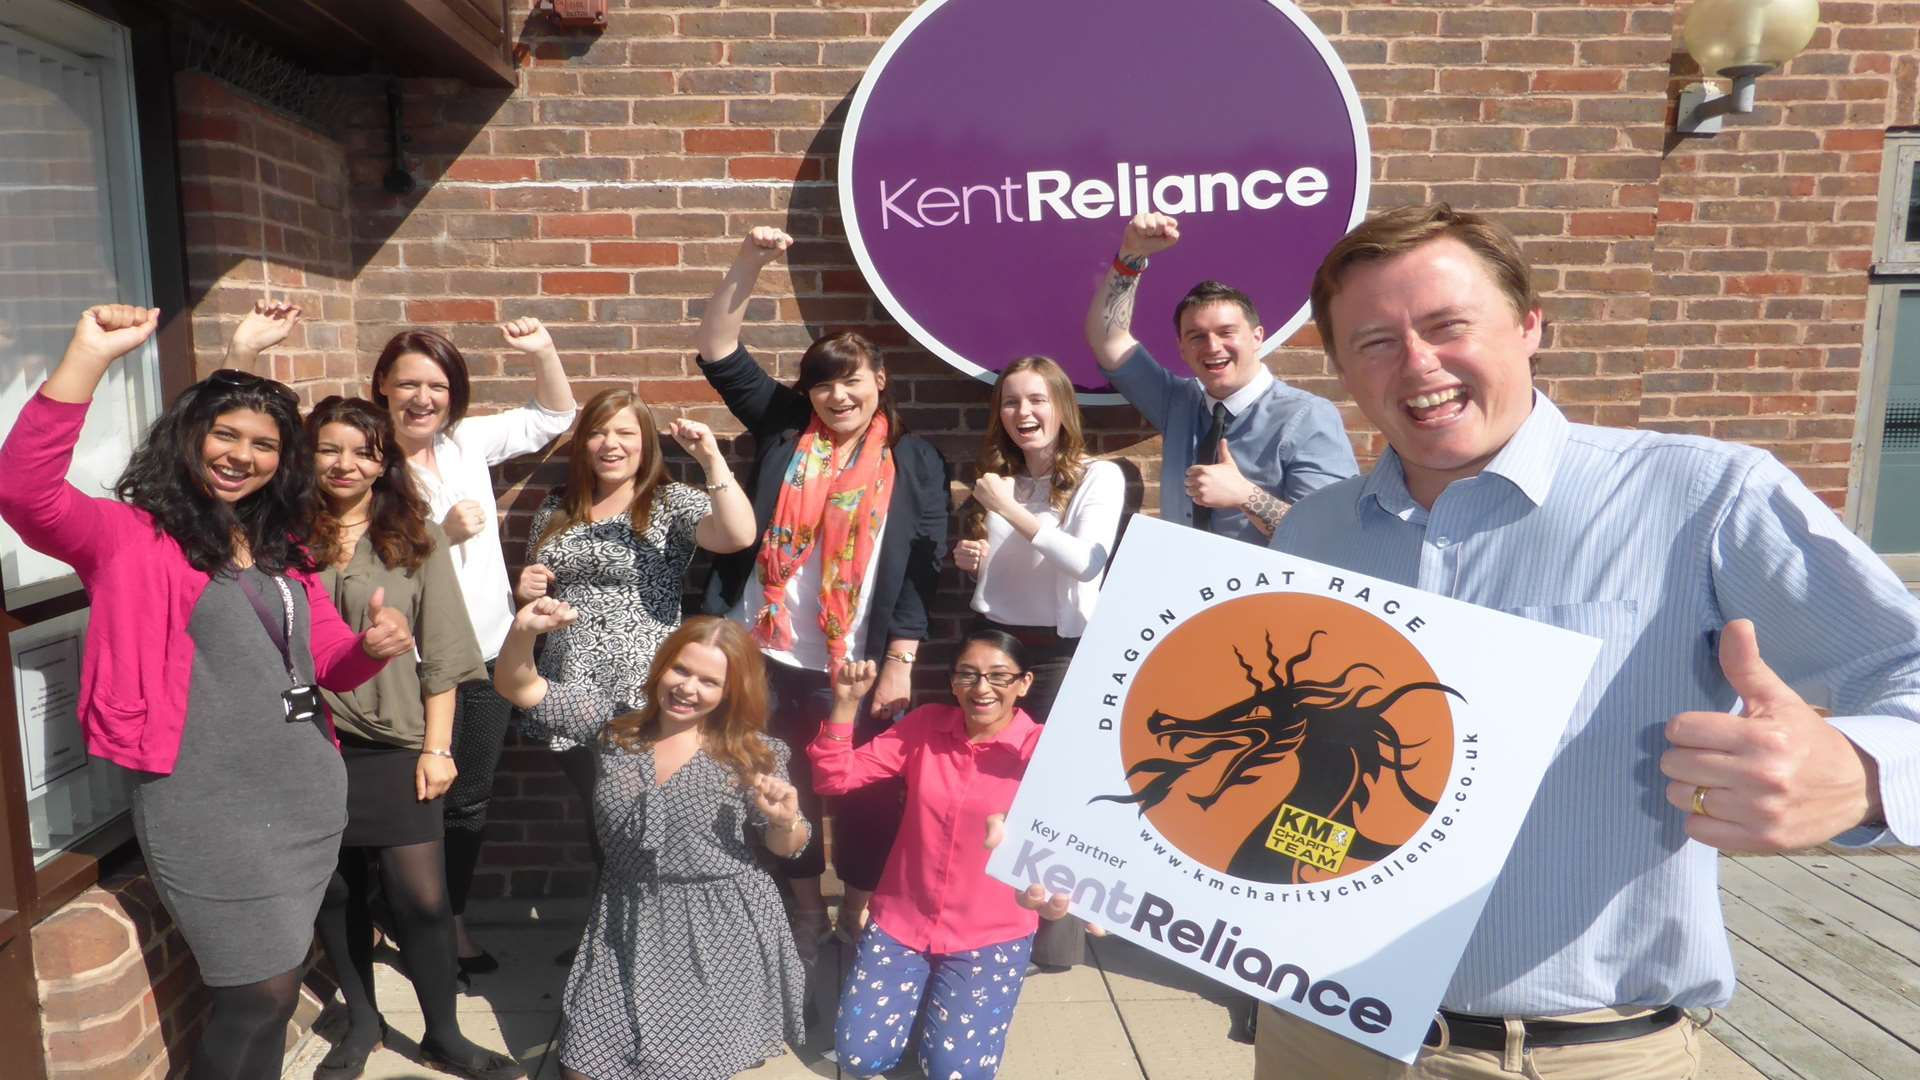 Robert Gurr and the Kent Reliance dragon boat team announce the organisation is to be the headline sponsor of the annual KM Dragon Boat Race.